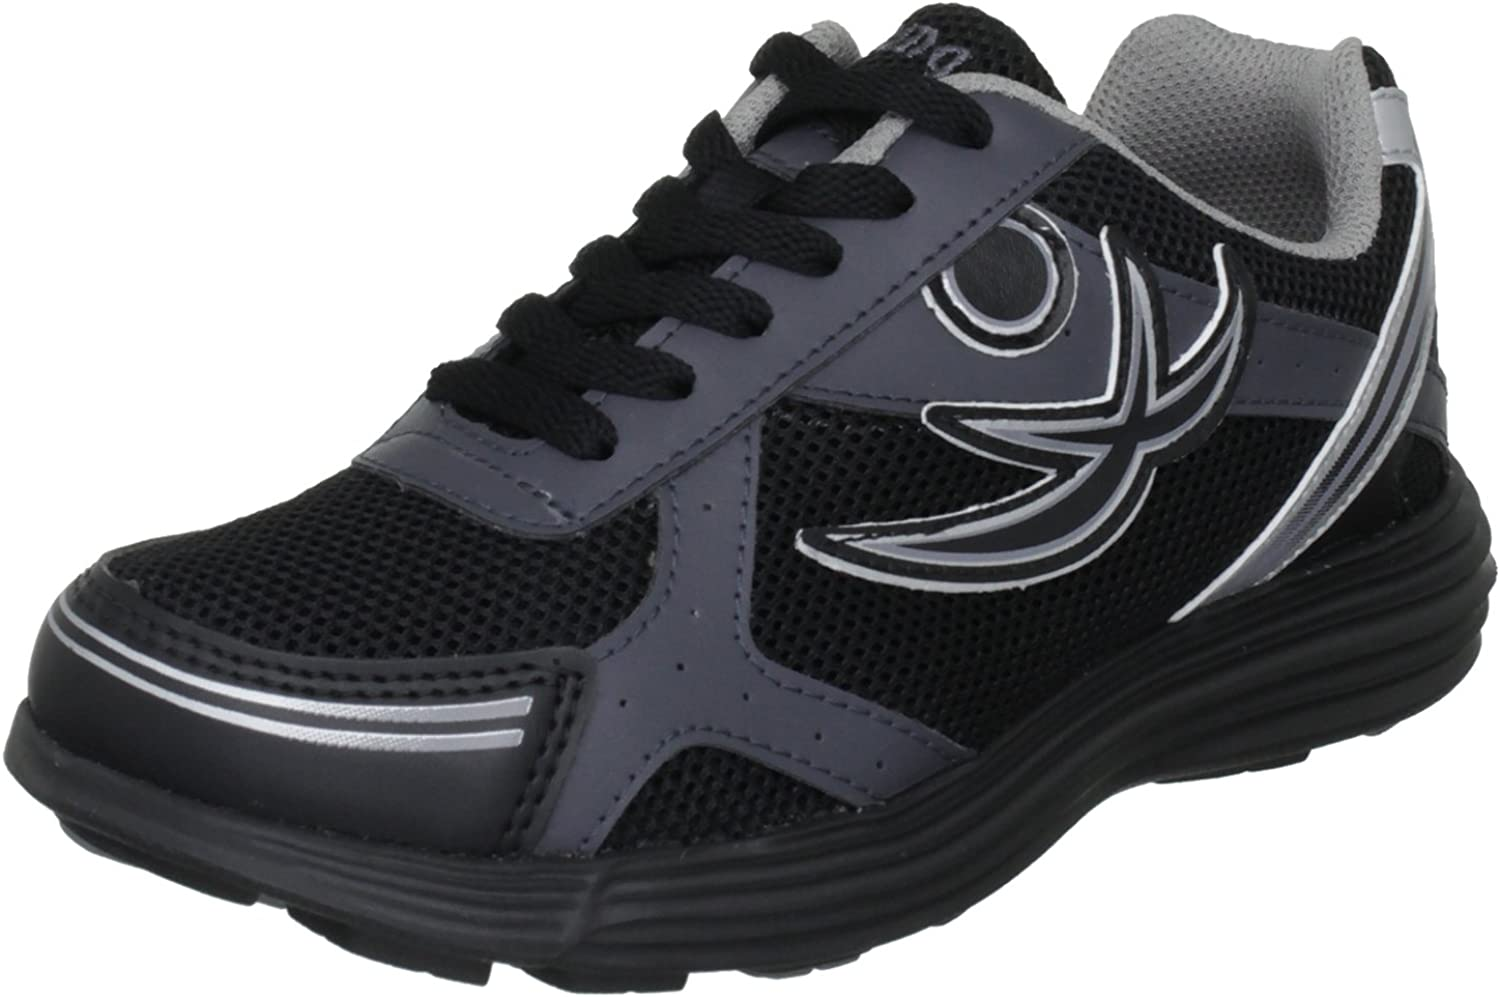 Chung -Shi Duxfree Lissabon, Women Cross Trainers